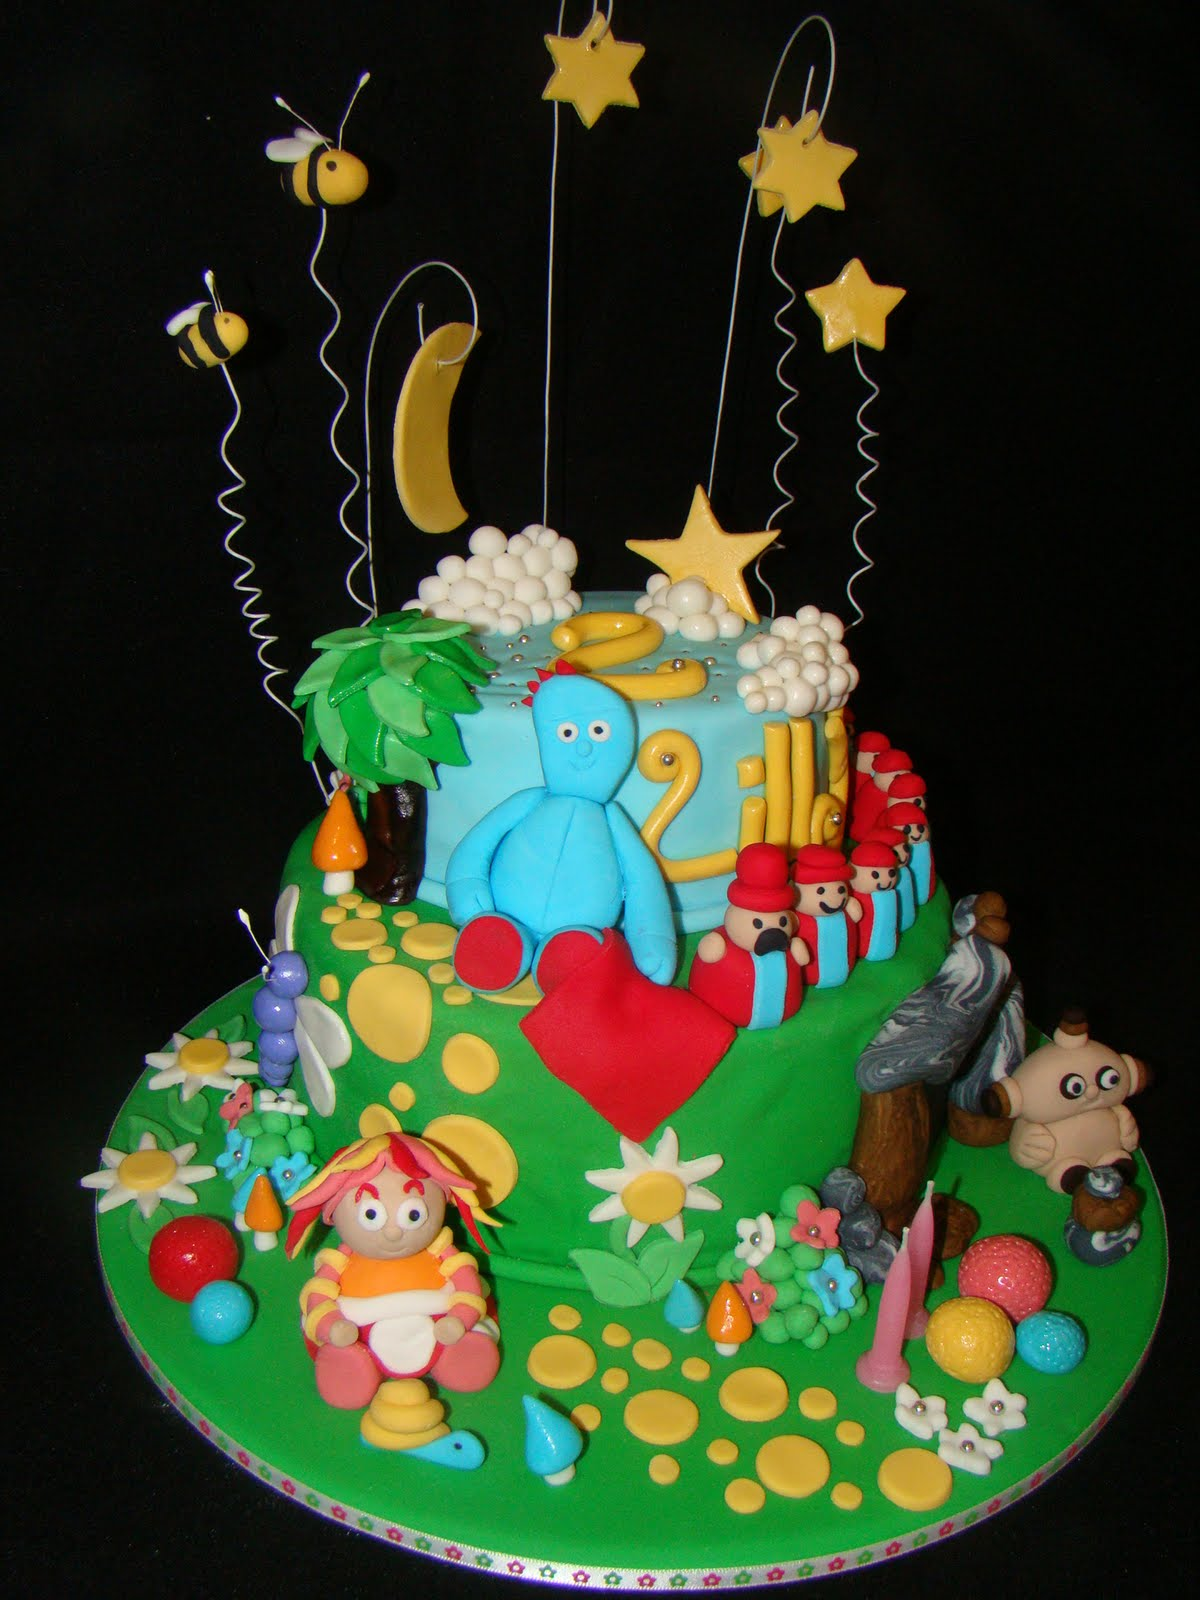 The Cupcake Stand: In The Night Garden Cake